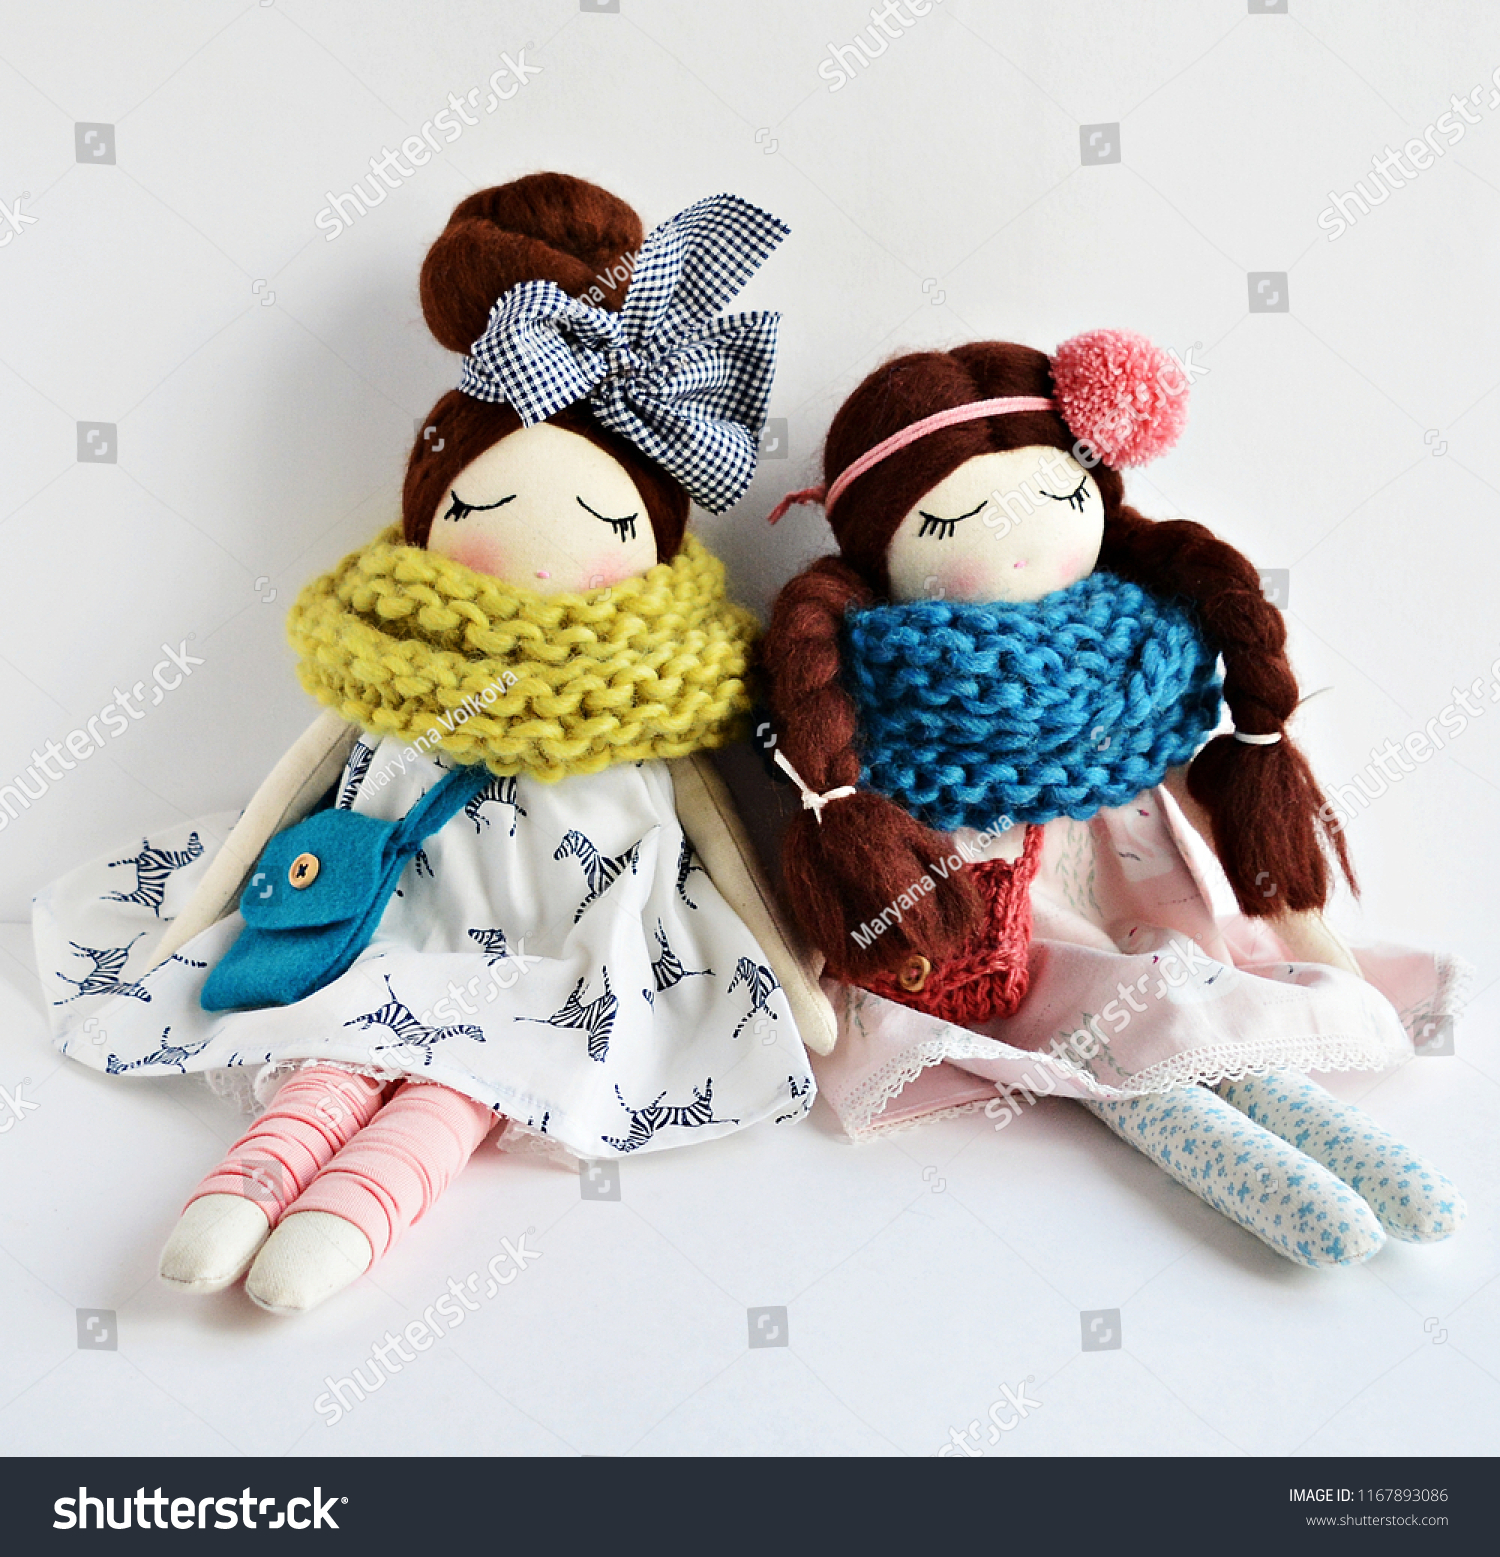 Cute Funny Fabric Dolls Warm Knitting Stock Photo Edit Now 1167893086